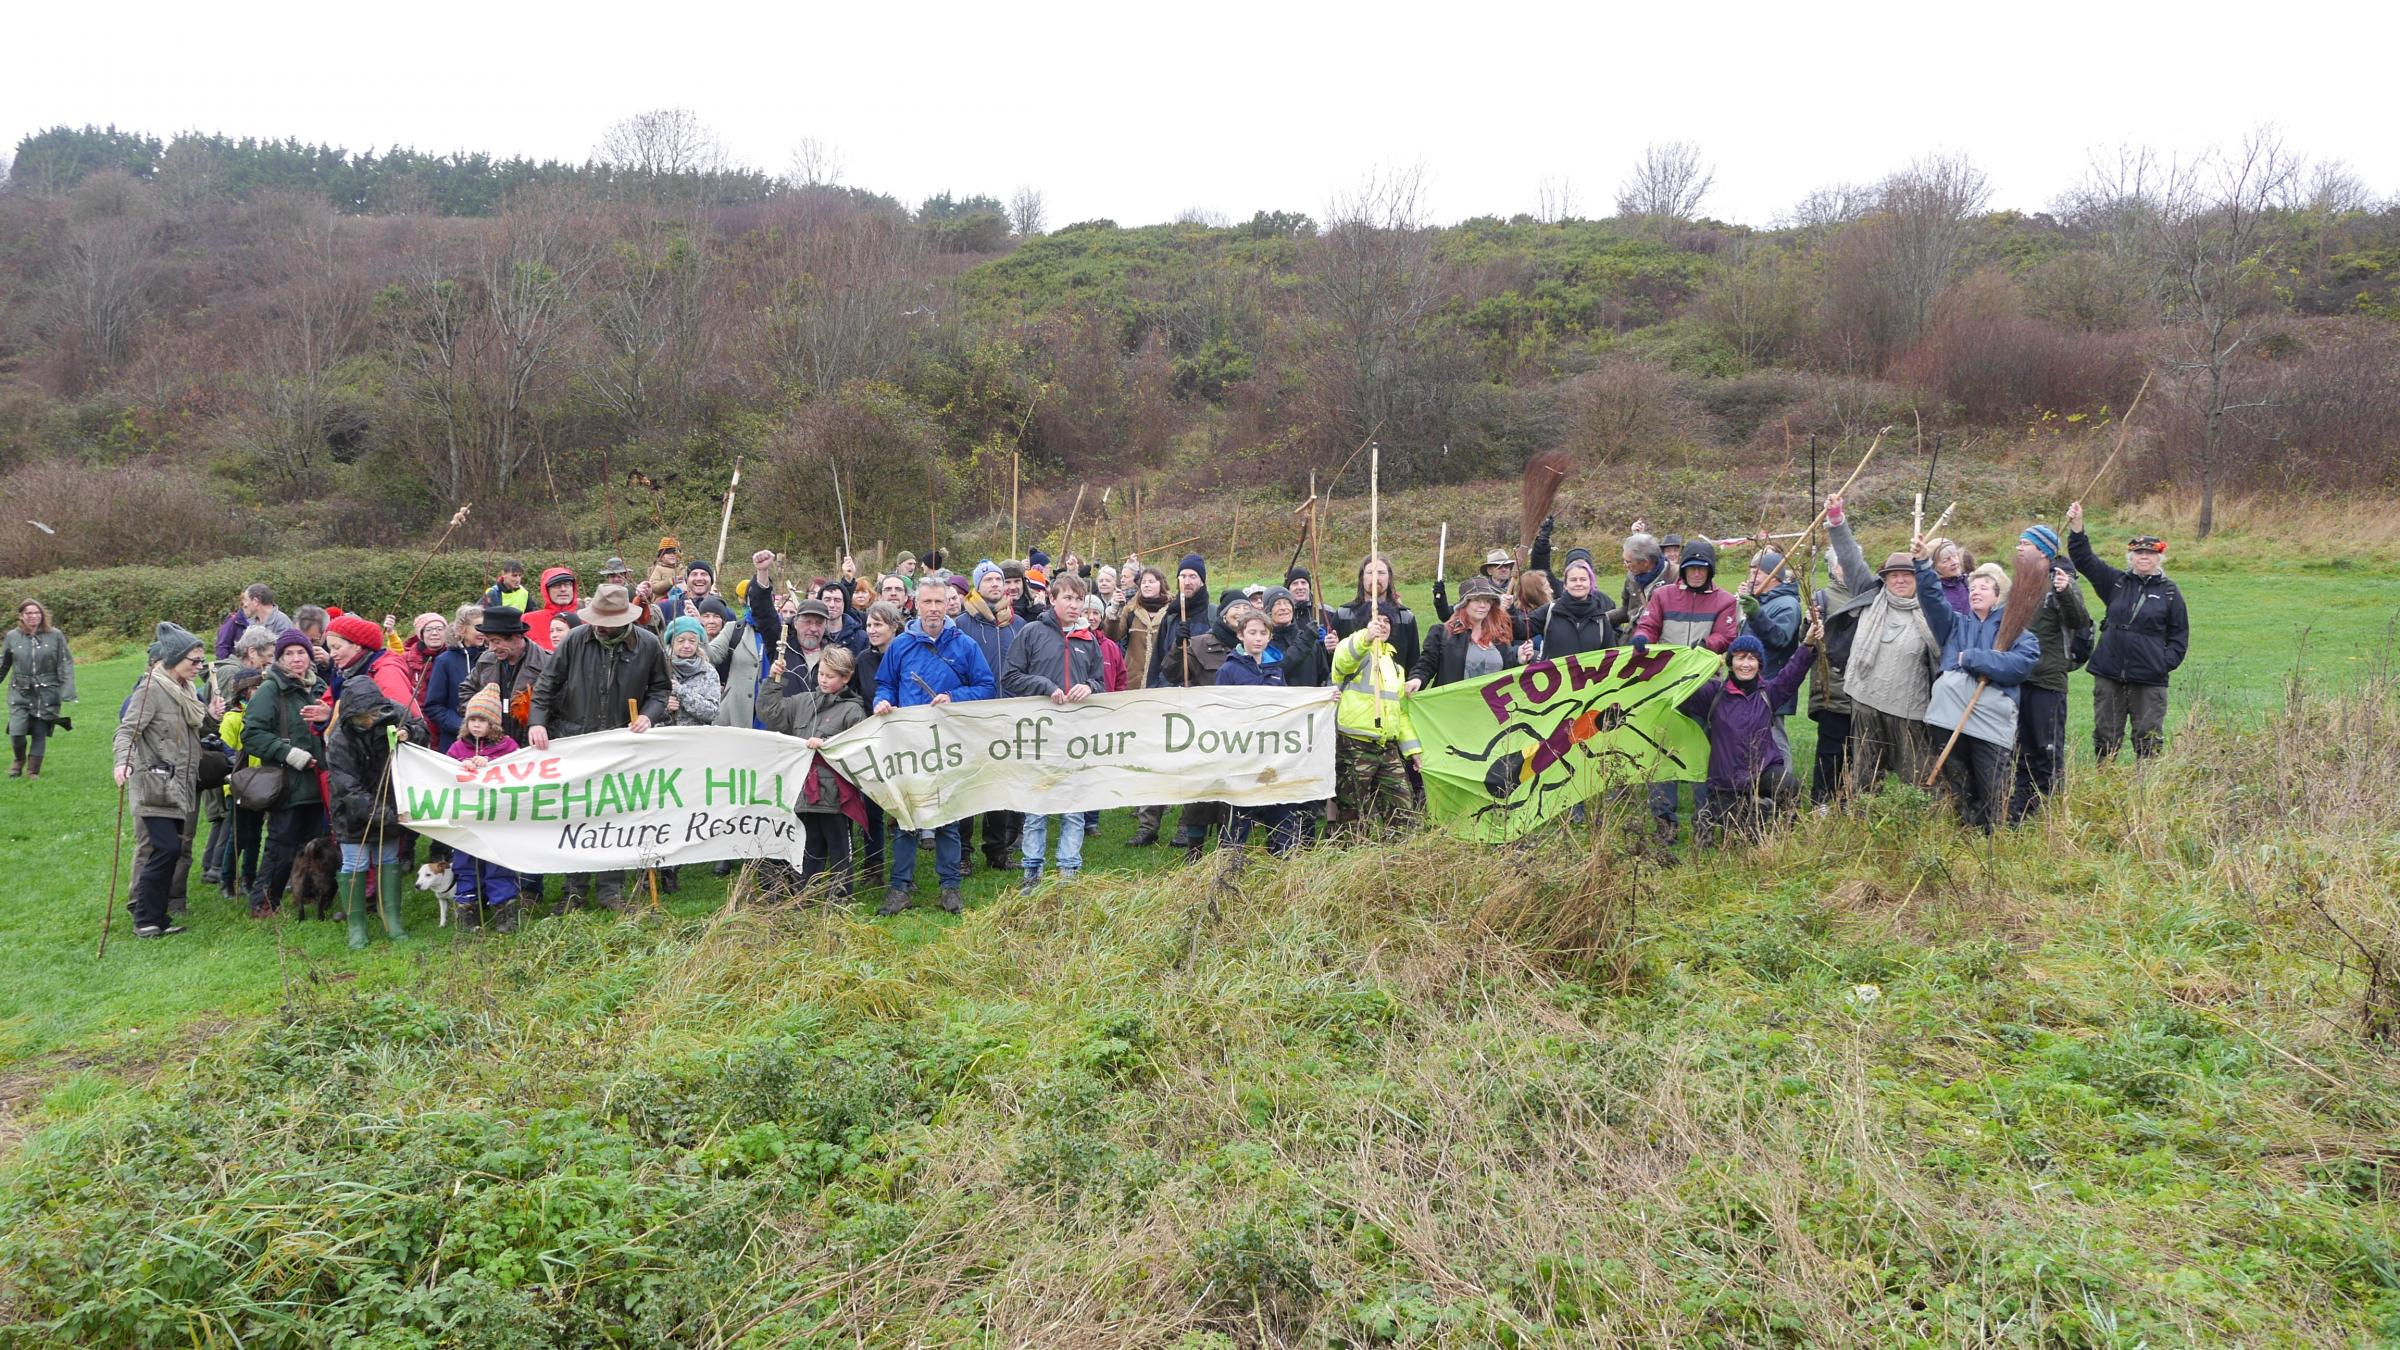 Whitehawk residents and environmentalists stand together to protect Whitehawk Hill